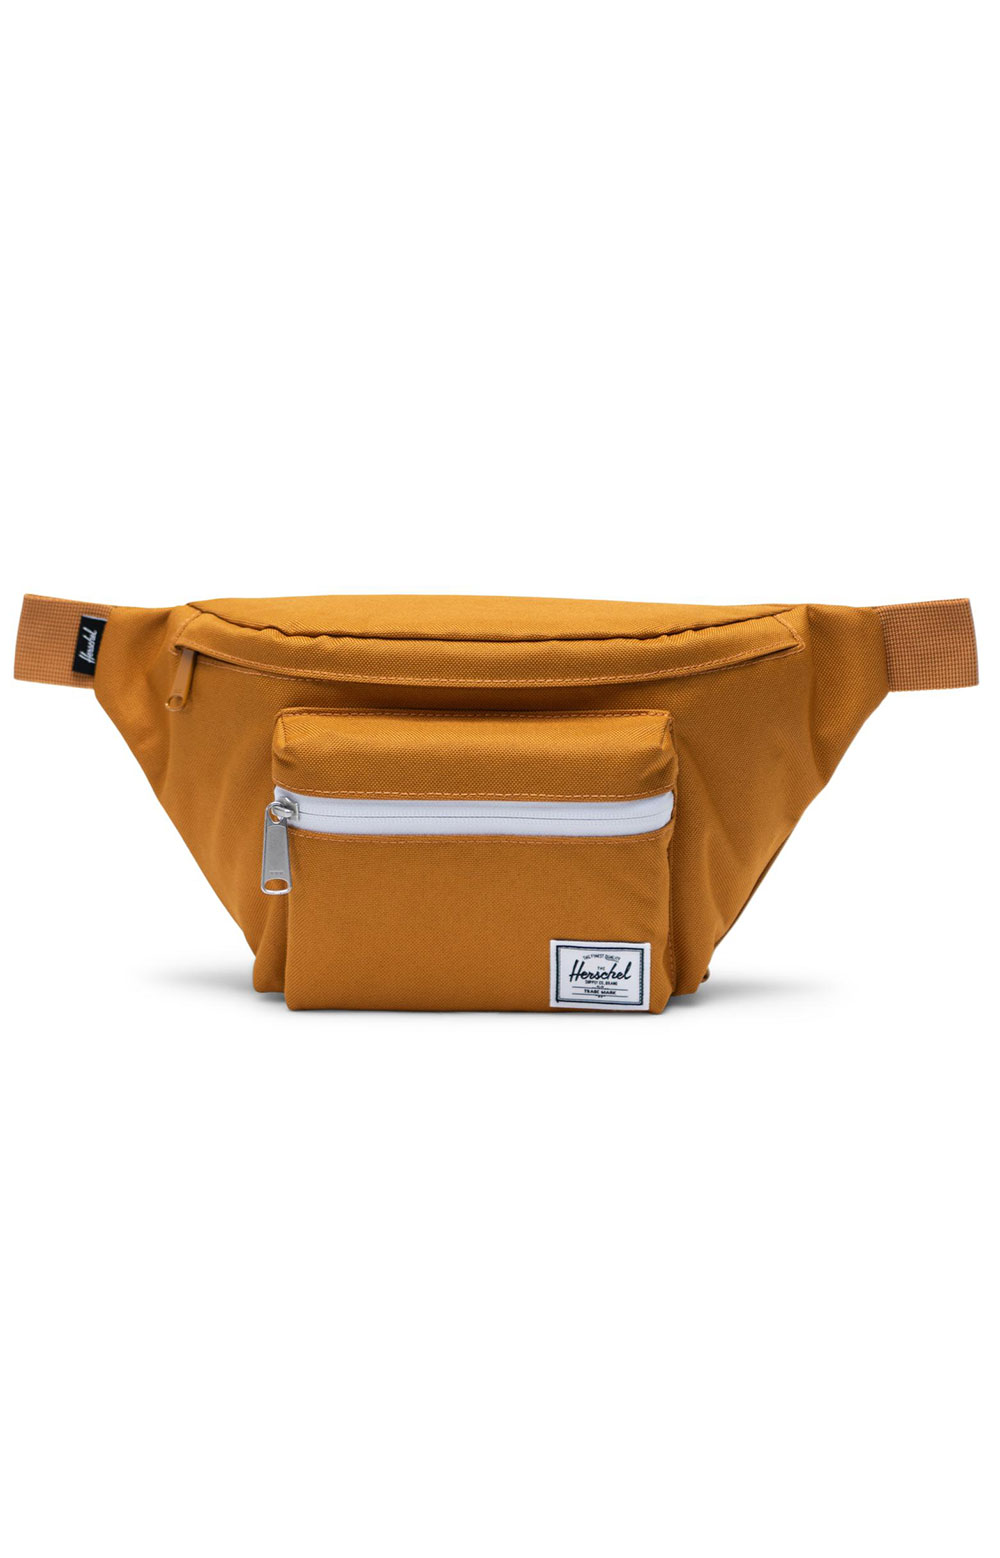 Seventeen Fanny Pack - Buckthorn Brown